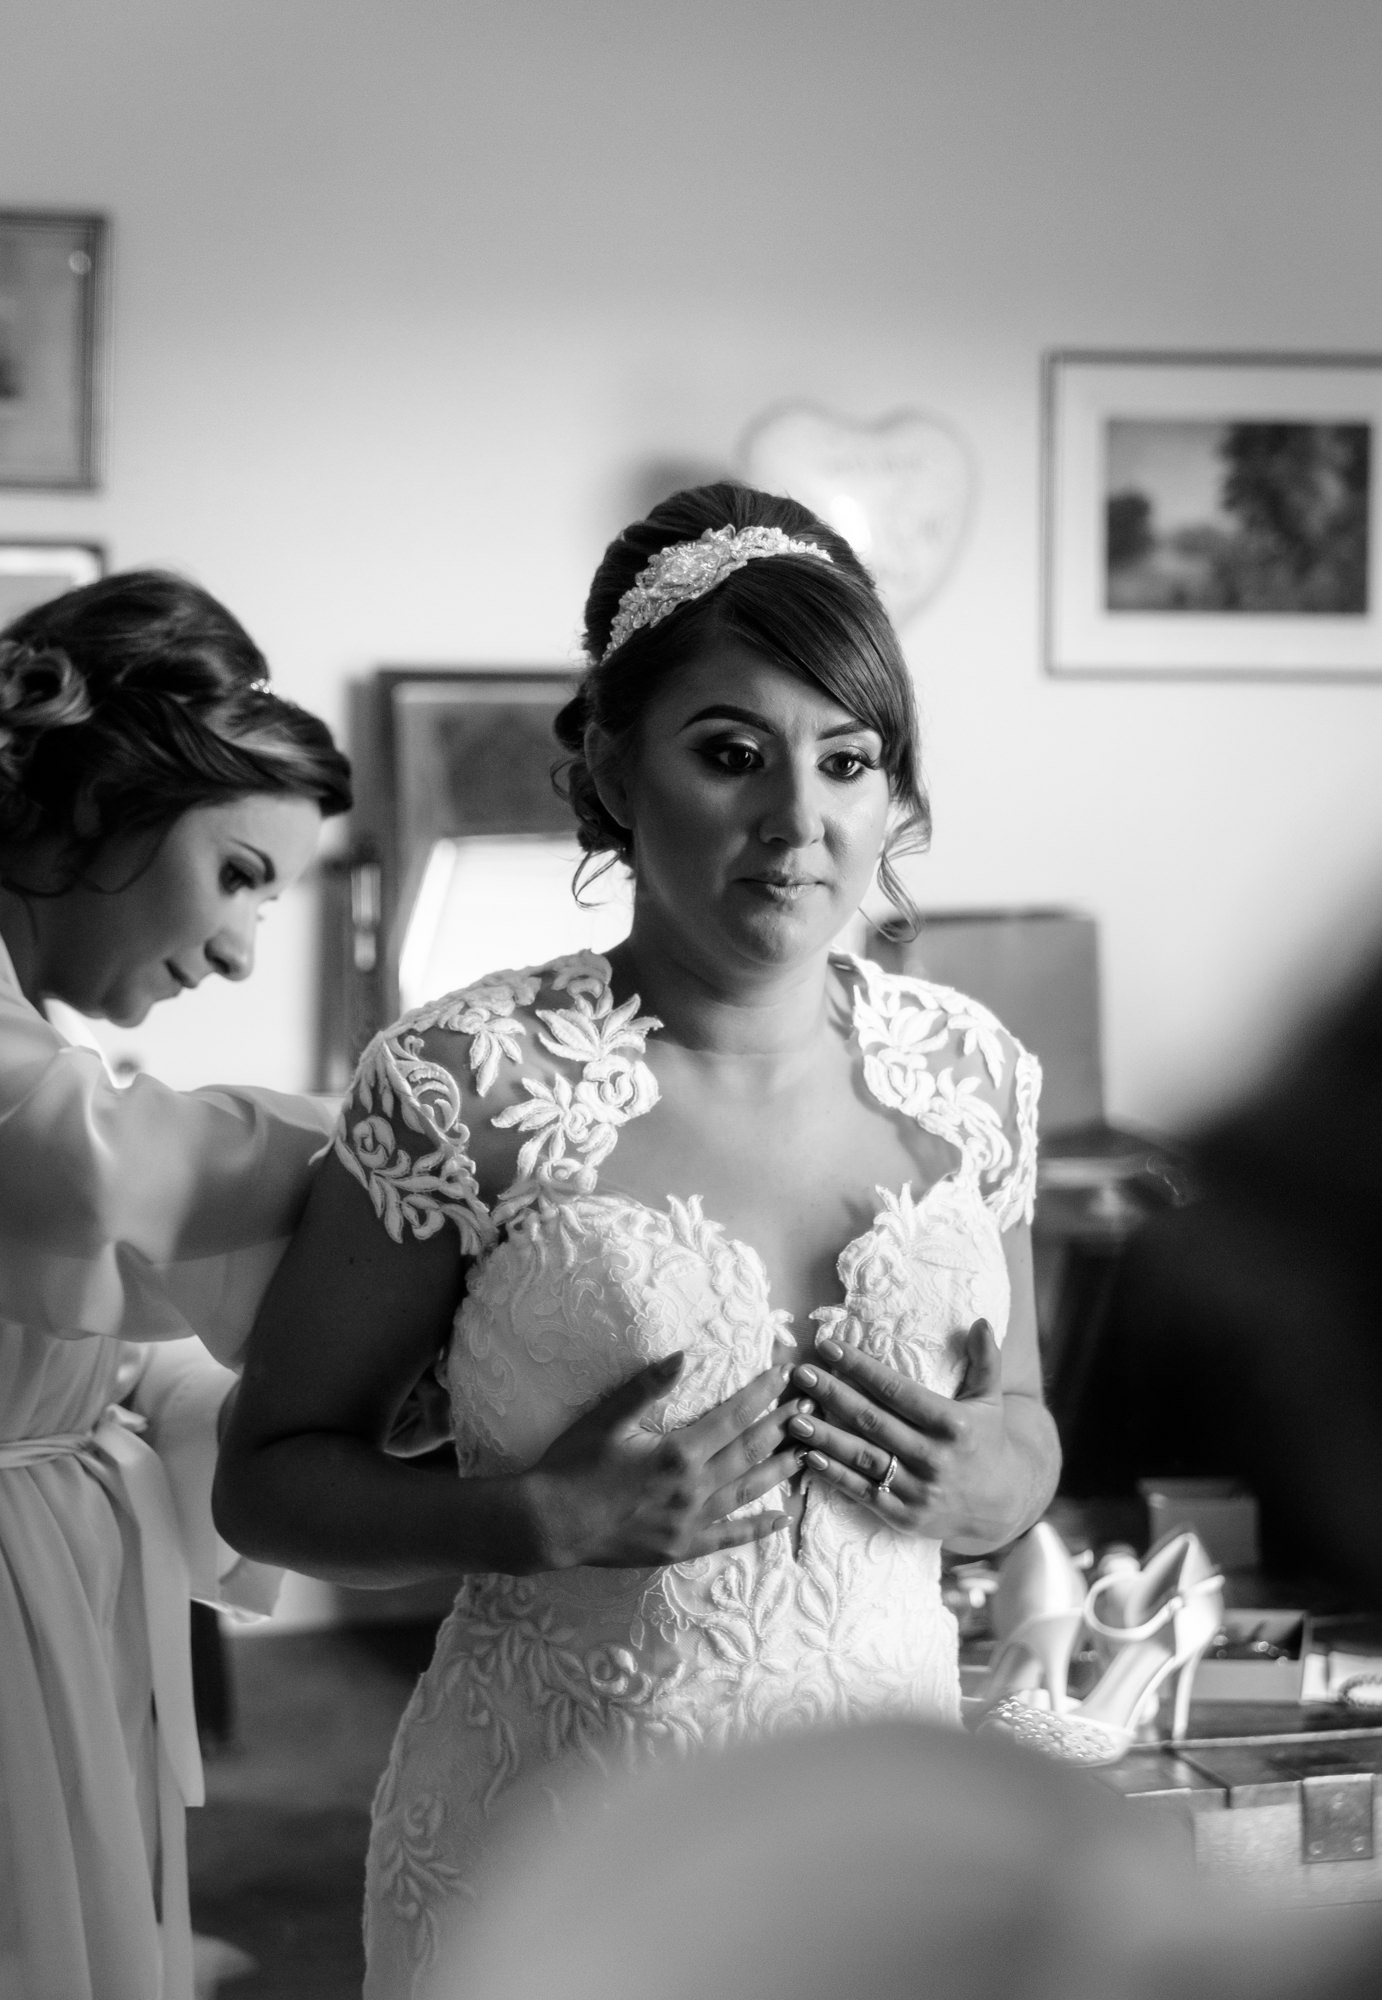 Bride getting ready at Bride dressing up her son at The inn at Whitewell